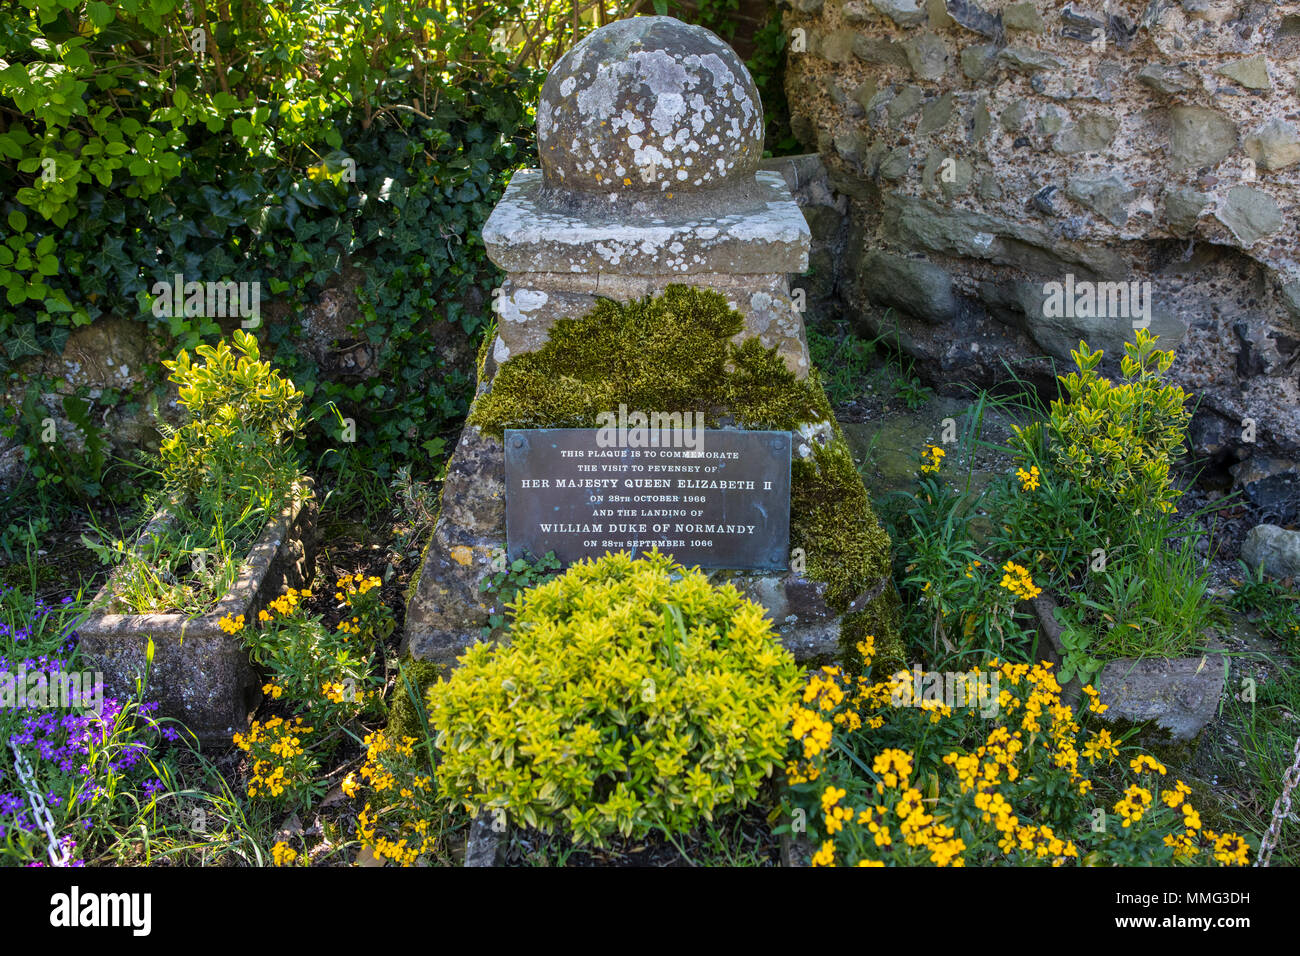 PEVENSEY, UK - MAY 6TH 2018: Plaque in the town of Pevensey to commemorate the landing of William the Conqueror and the visit by Elizabeth II 900 year - Stock Image